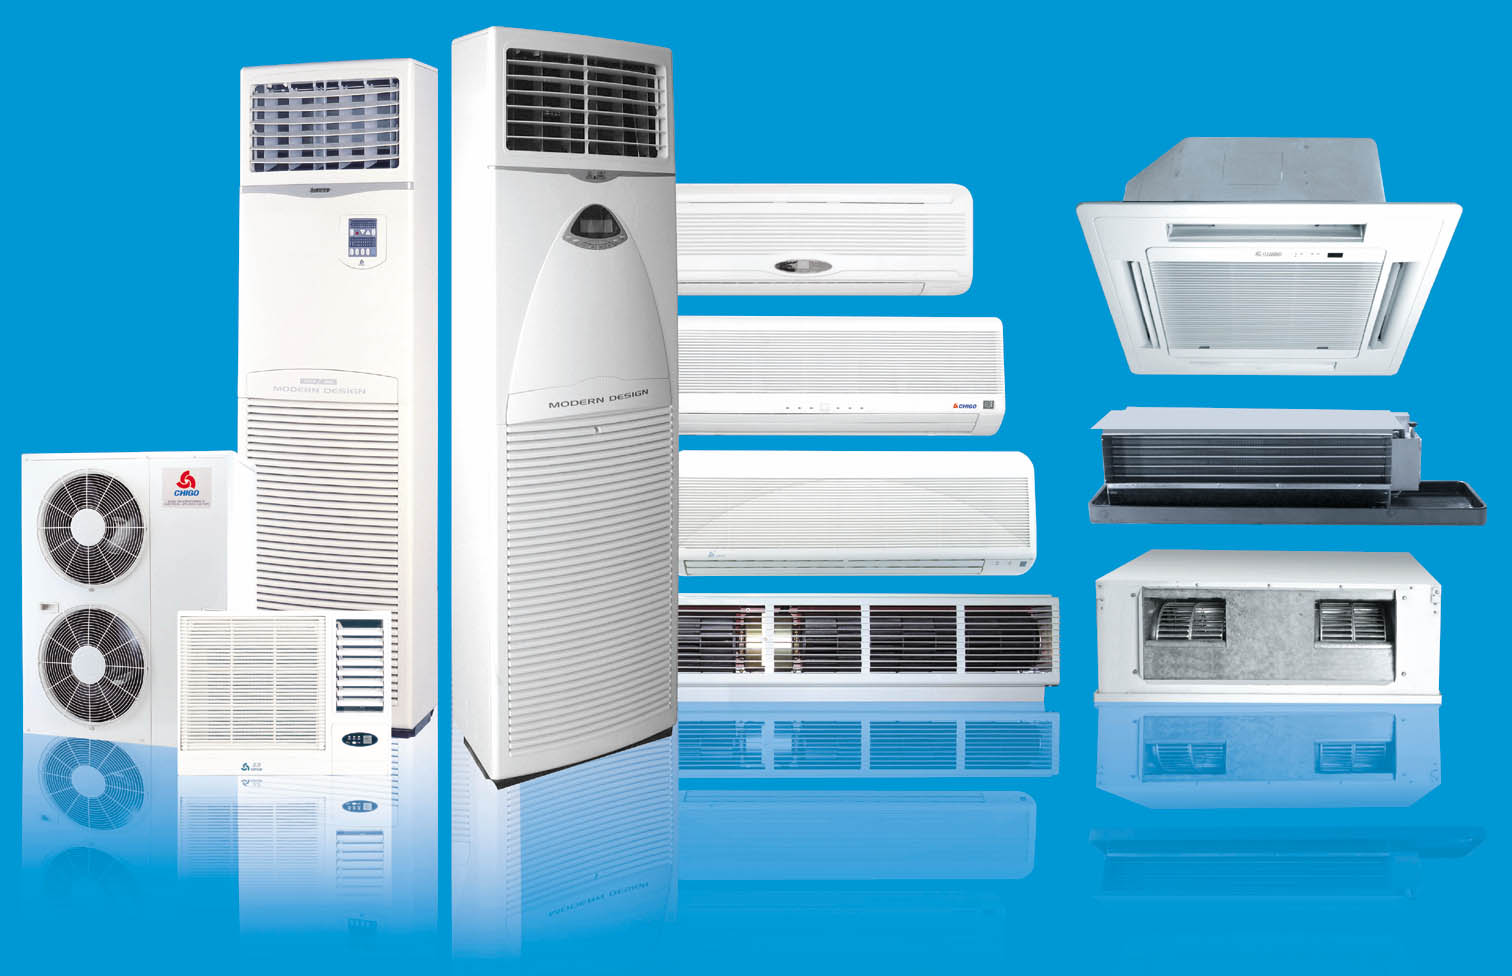 Air Conditioner(id:139634) from Guangdong Chigo Air Conditioner Co., Ltd. - EC21